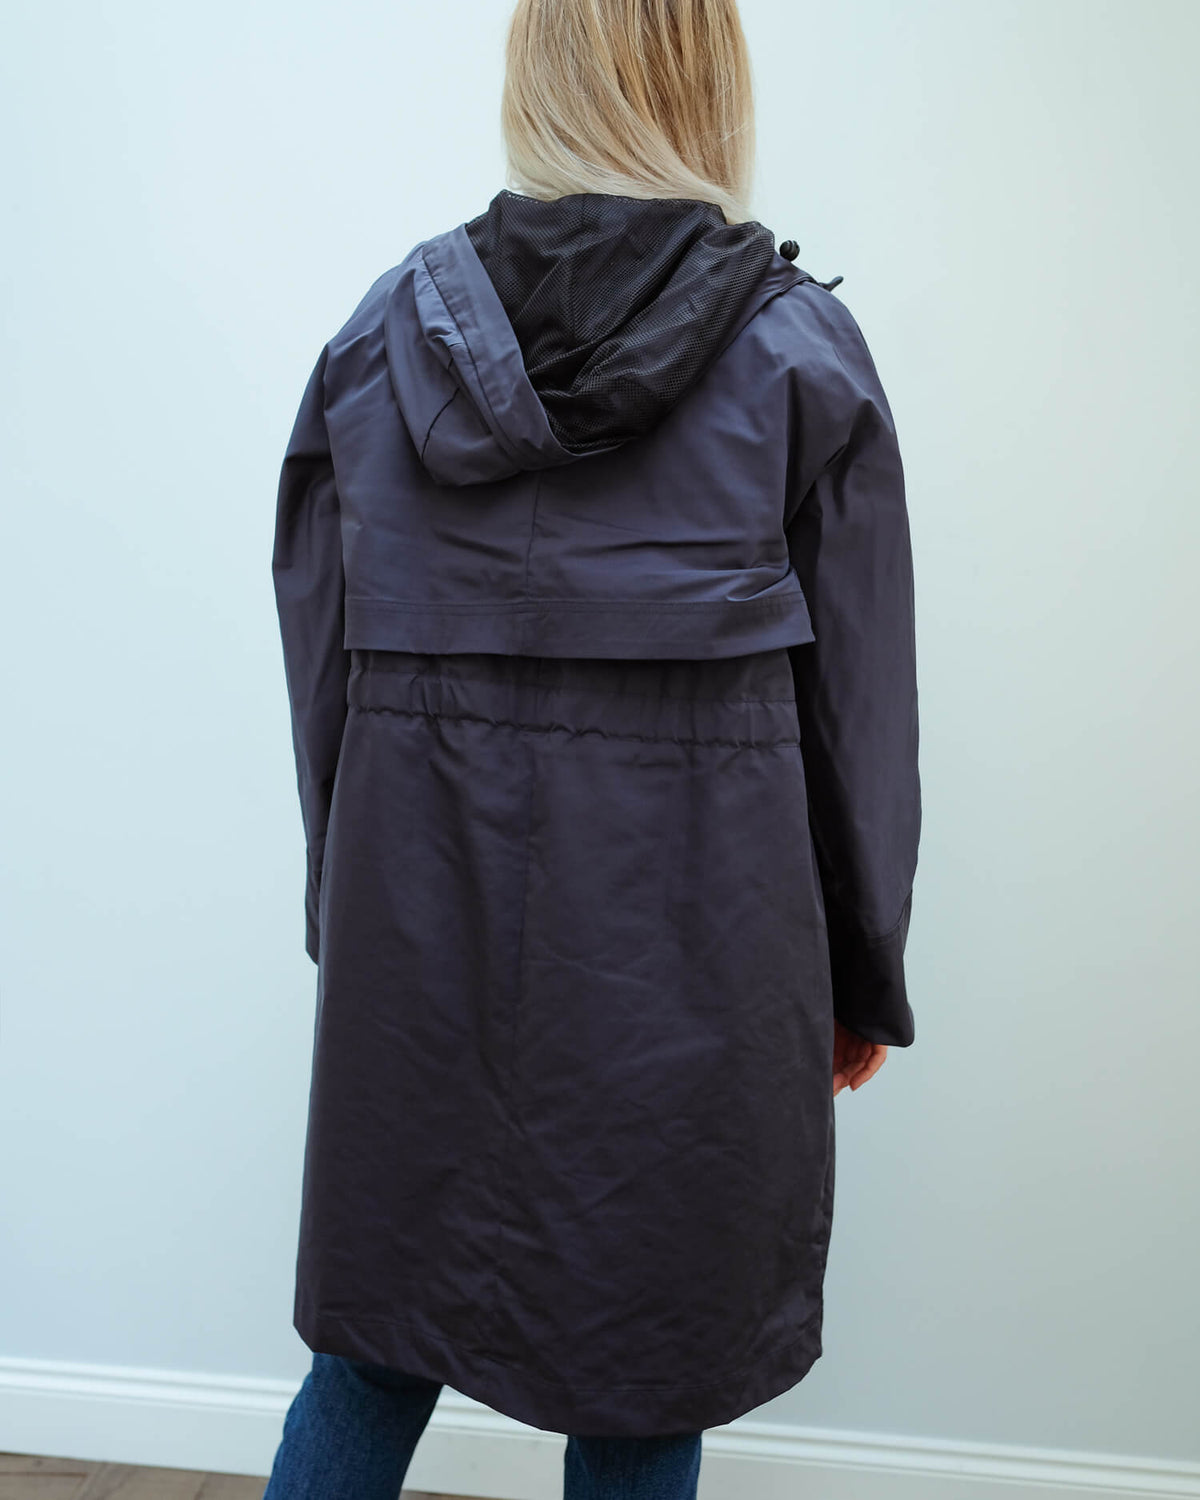 MM Destino raincoat in navy